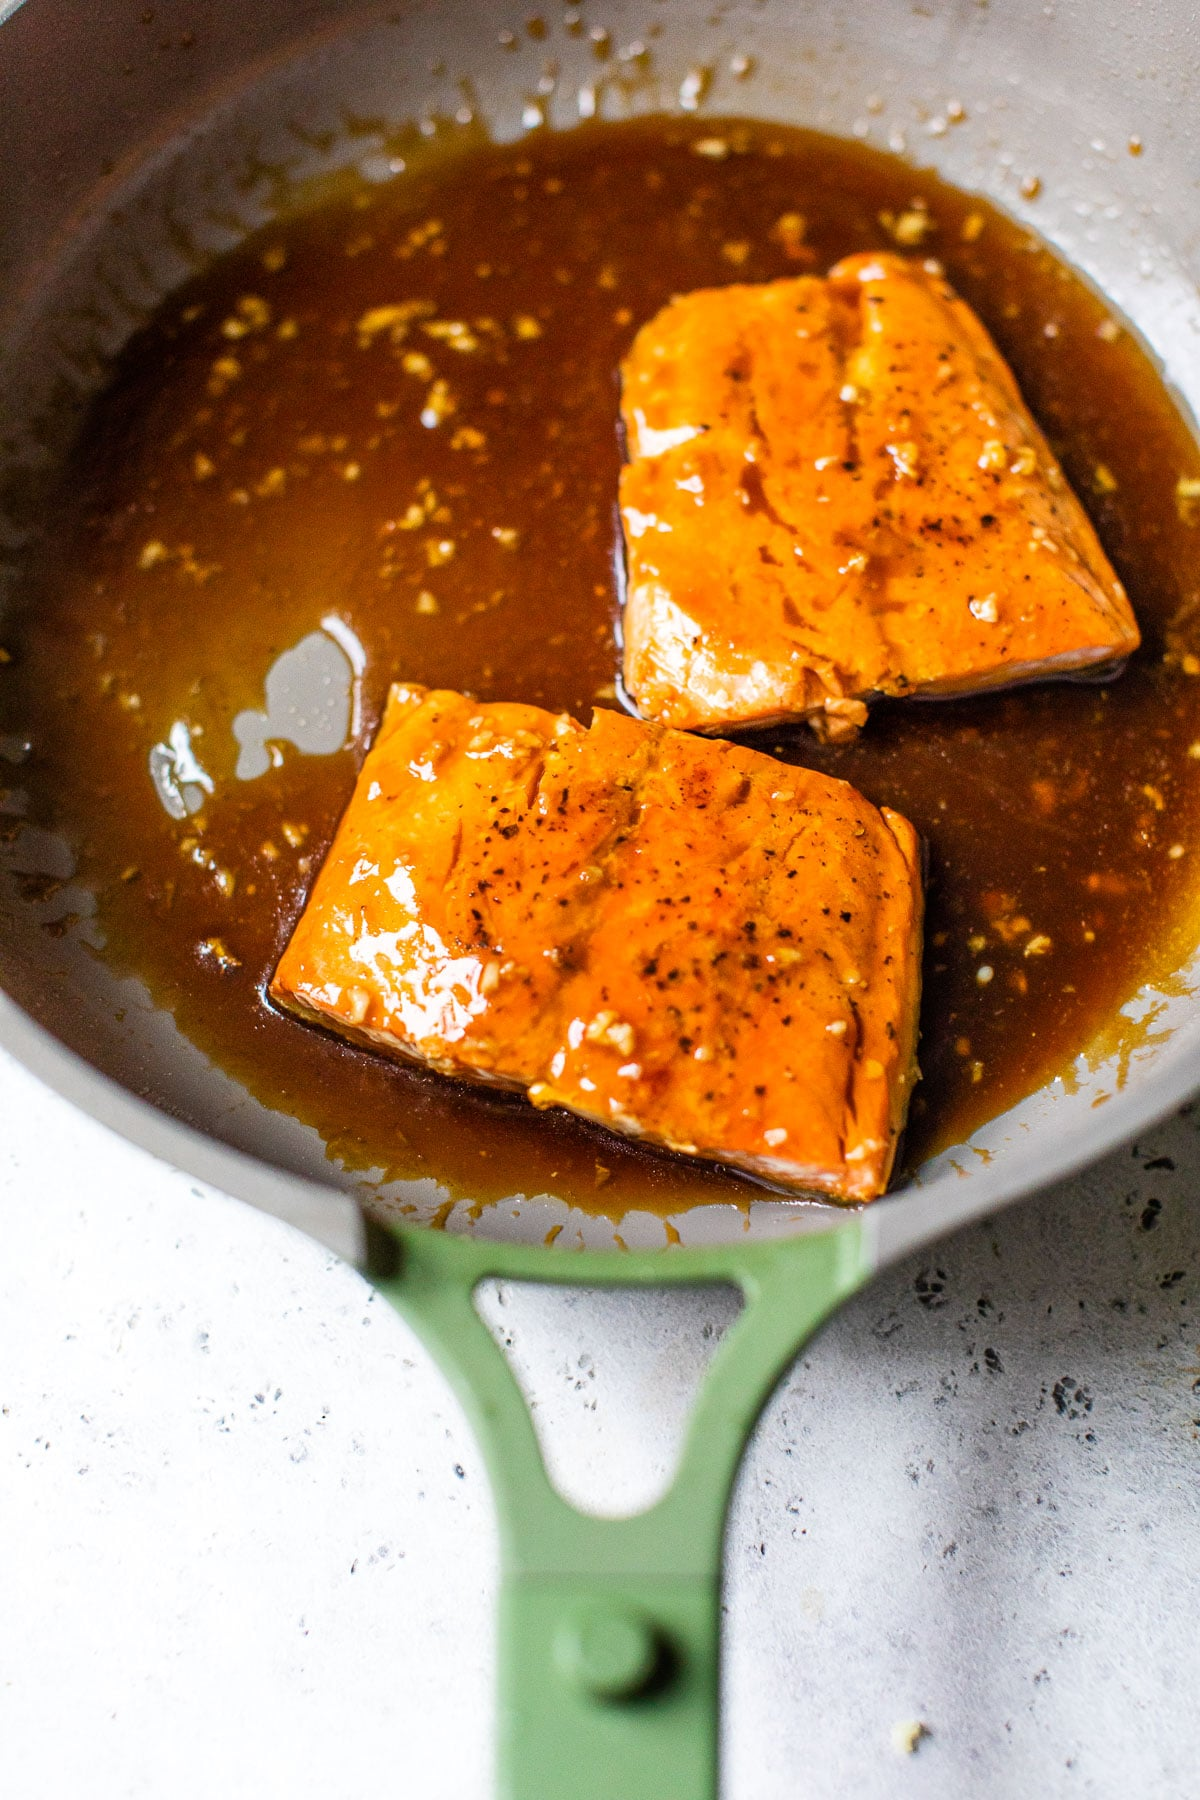 cooked salmon in a skillet with teriyaki sauce